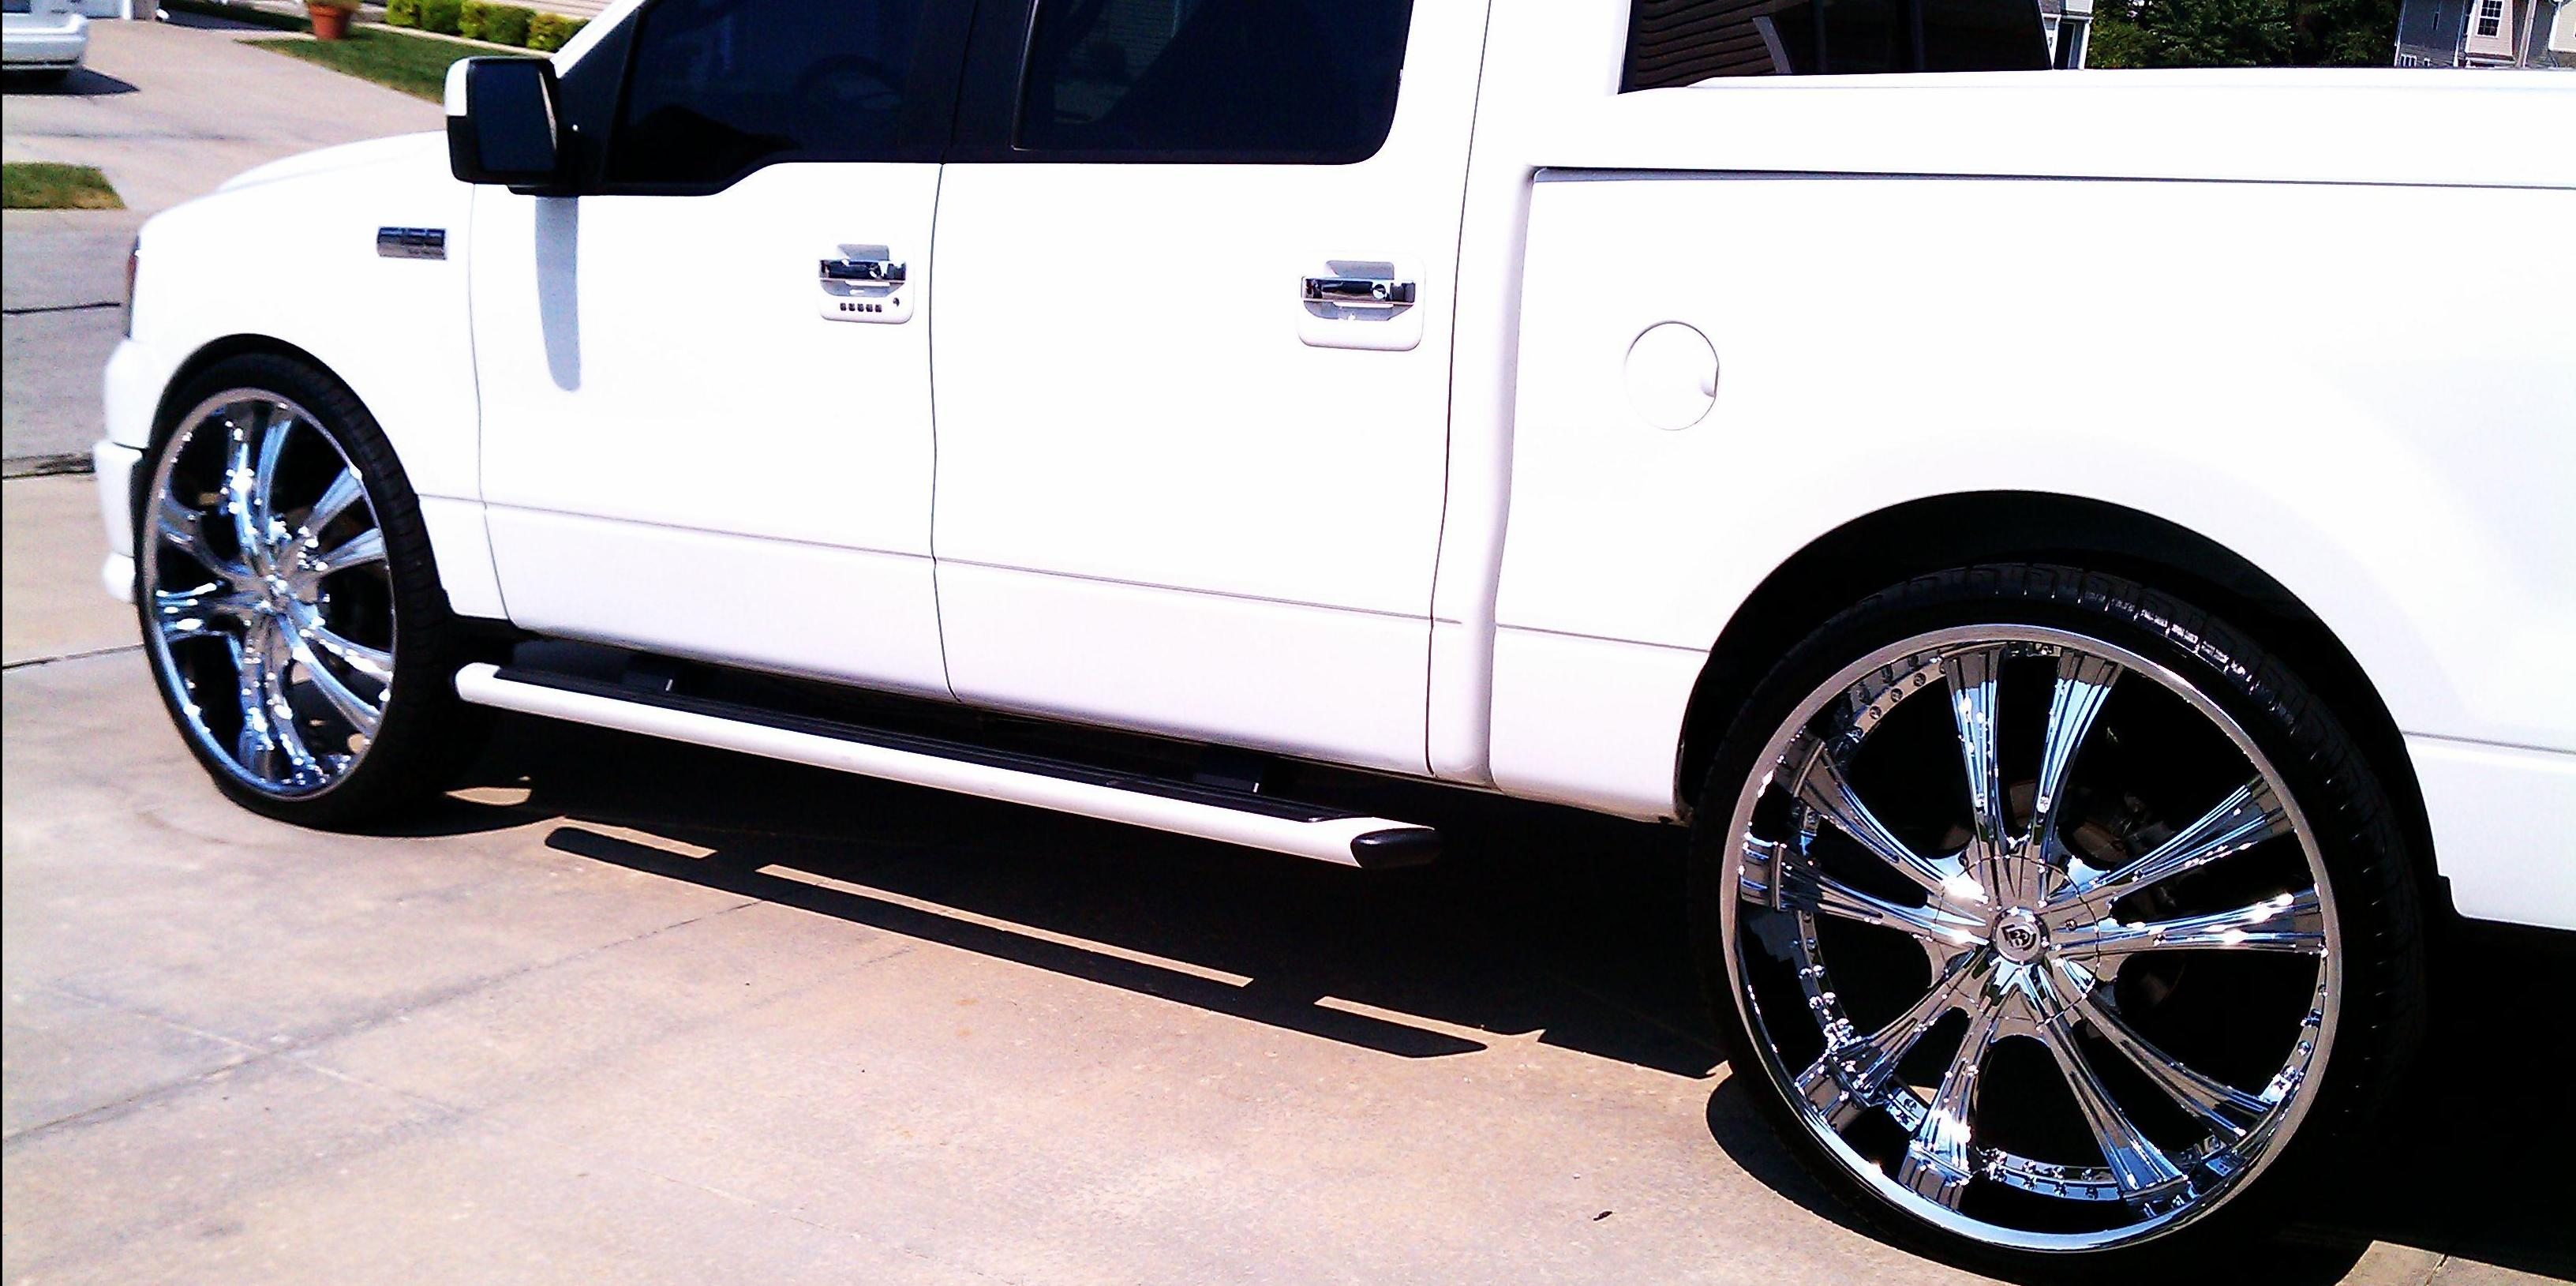 BeatDownLow's 2008 Ford F150 SuperCrew Cab